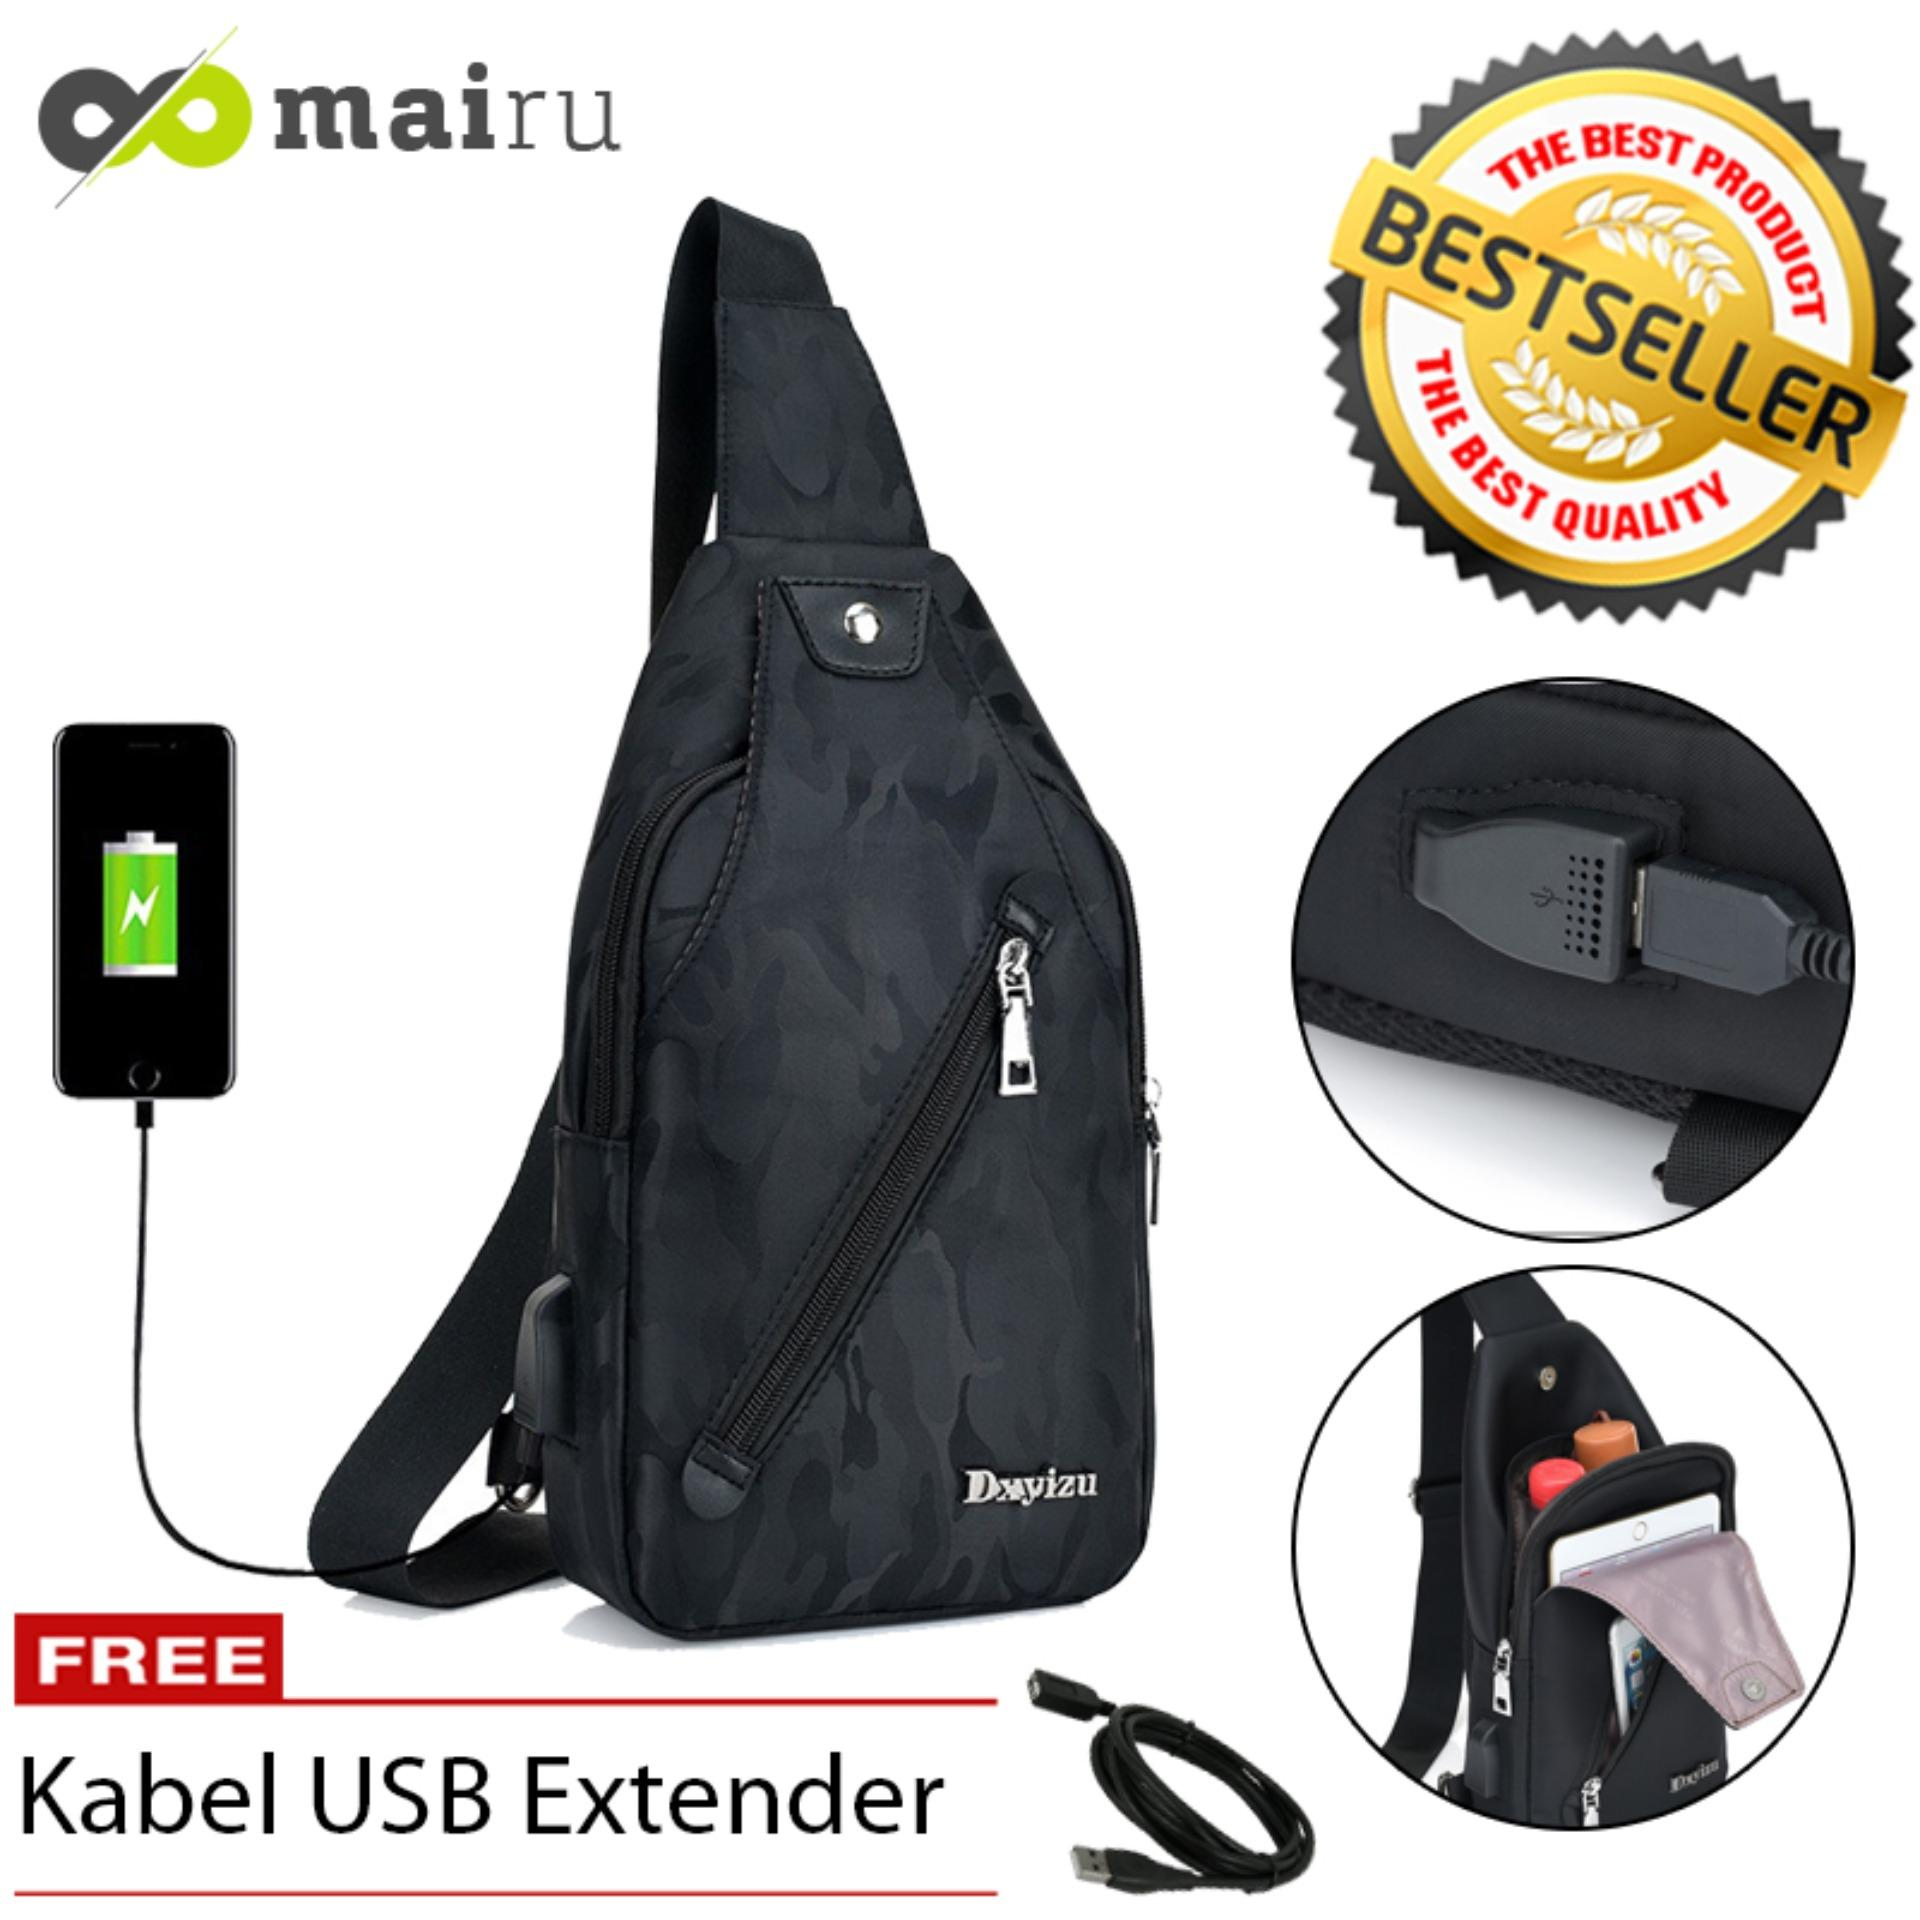 Spesifikasi Mairu Dxyizu 533 Tas Selempang Pria Sling Bag Cross Body With Usb Charger Support For Iphone Ipad Mini Xiaomi Samsung Tab Tablet 8 Anti Theft Terbaik